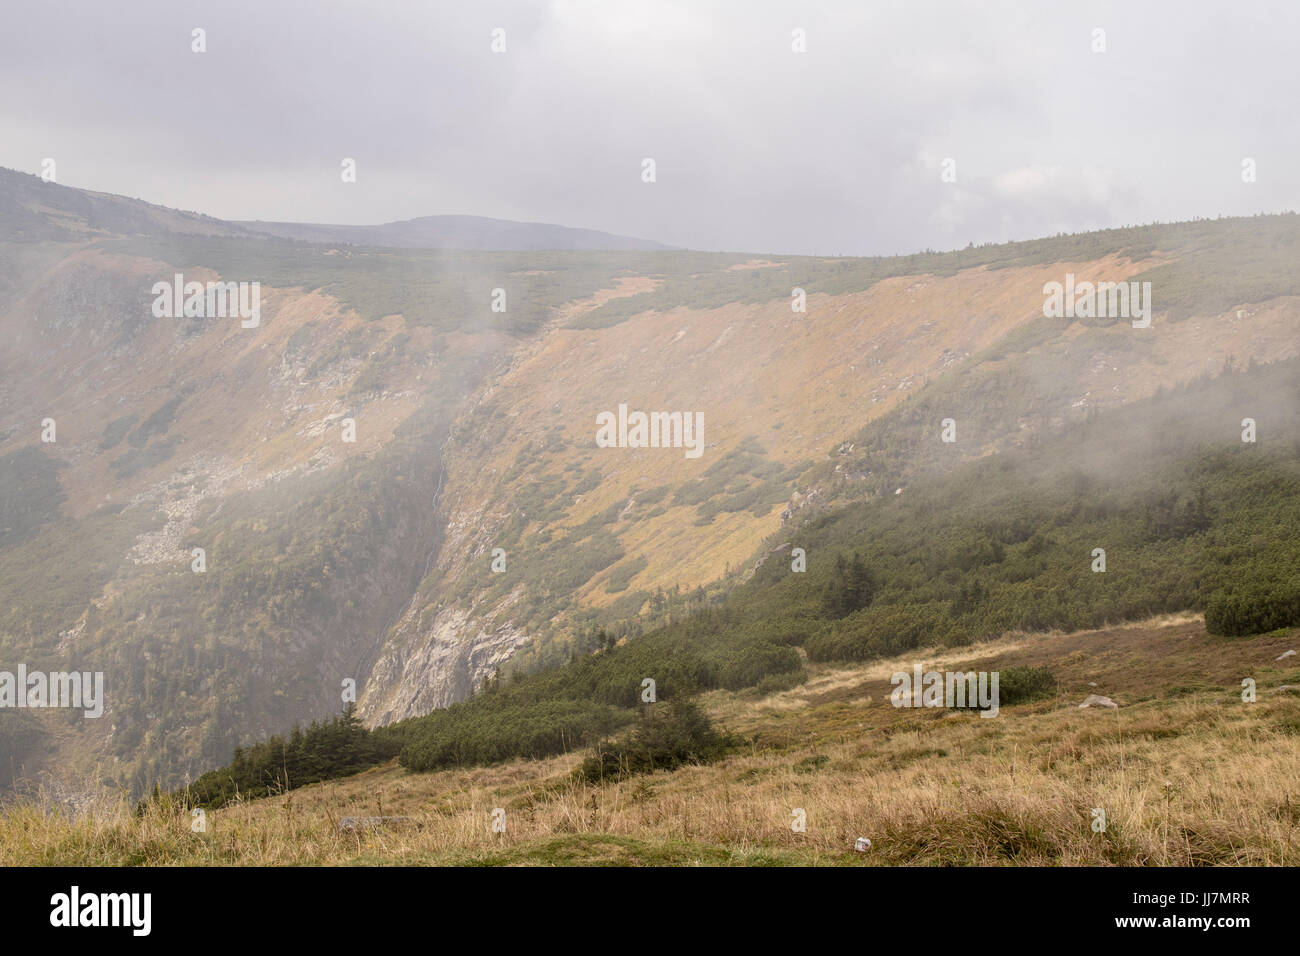 Autumn mountain lansdcape in overcast conditions taken from steep hill with foggy background Stock Photo